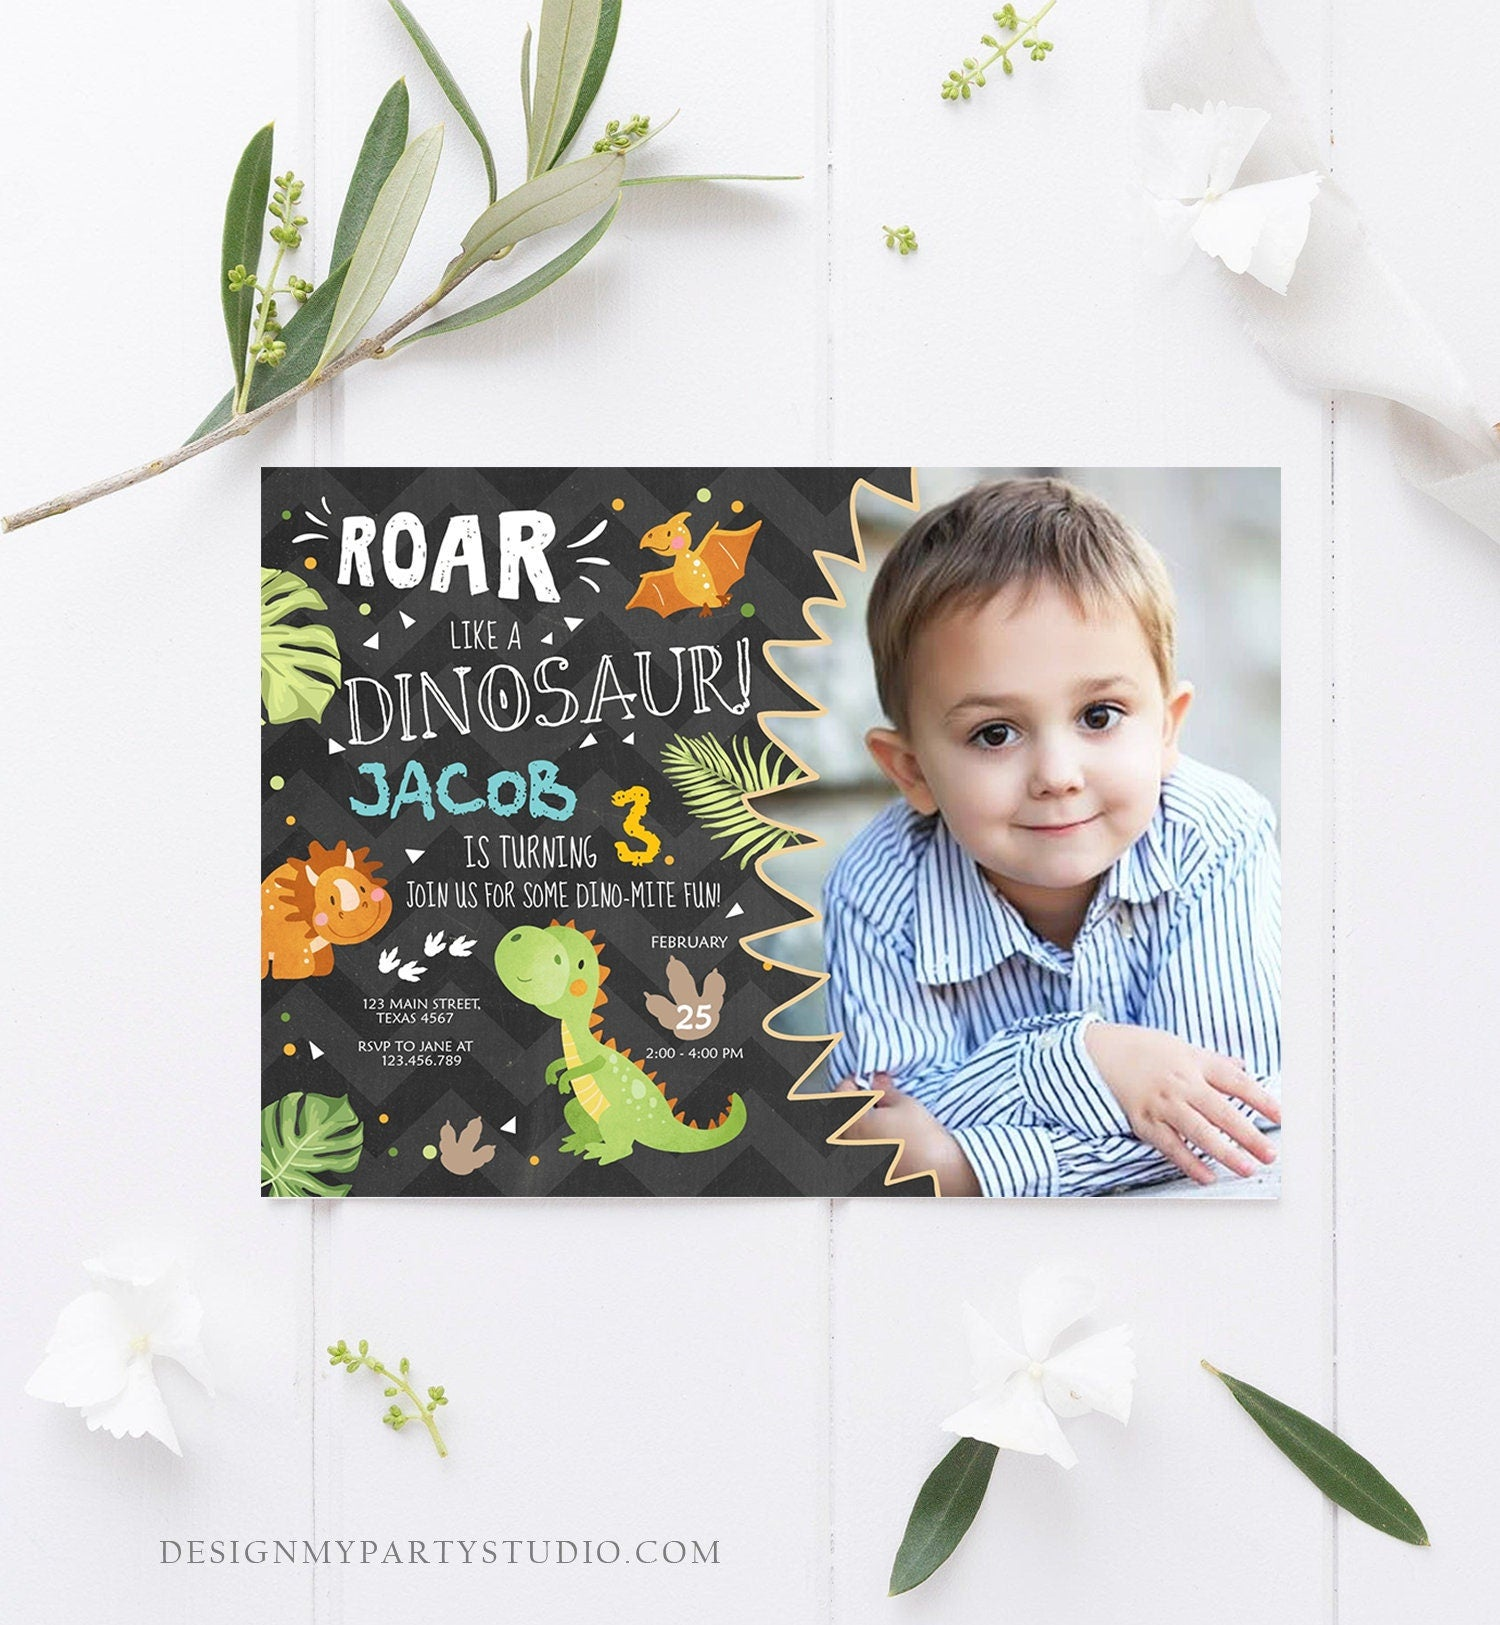 Editable Dinosaur Birthday Invitation Dino Dig Party Prehistoric Boy T-Rex Roar Fossil Party Digital Download Printable Template Corjl 0283